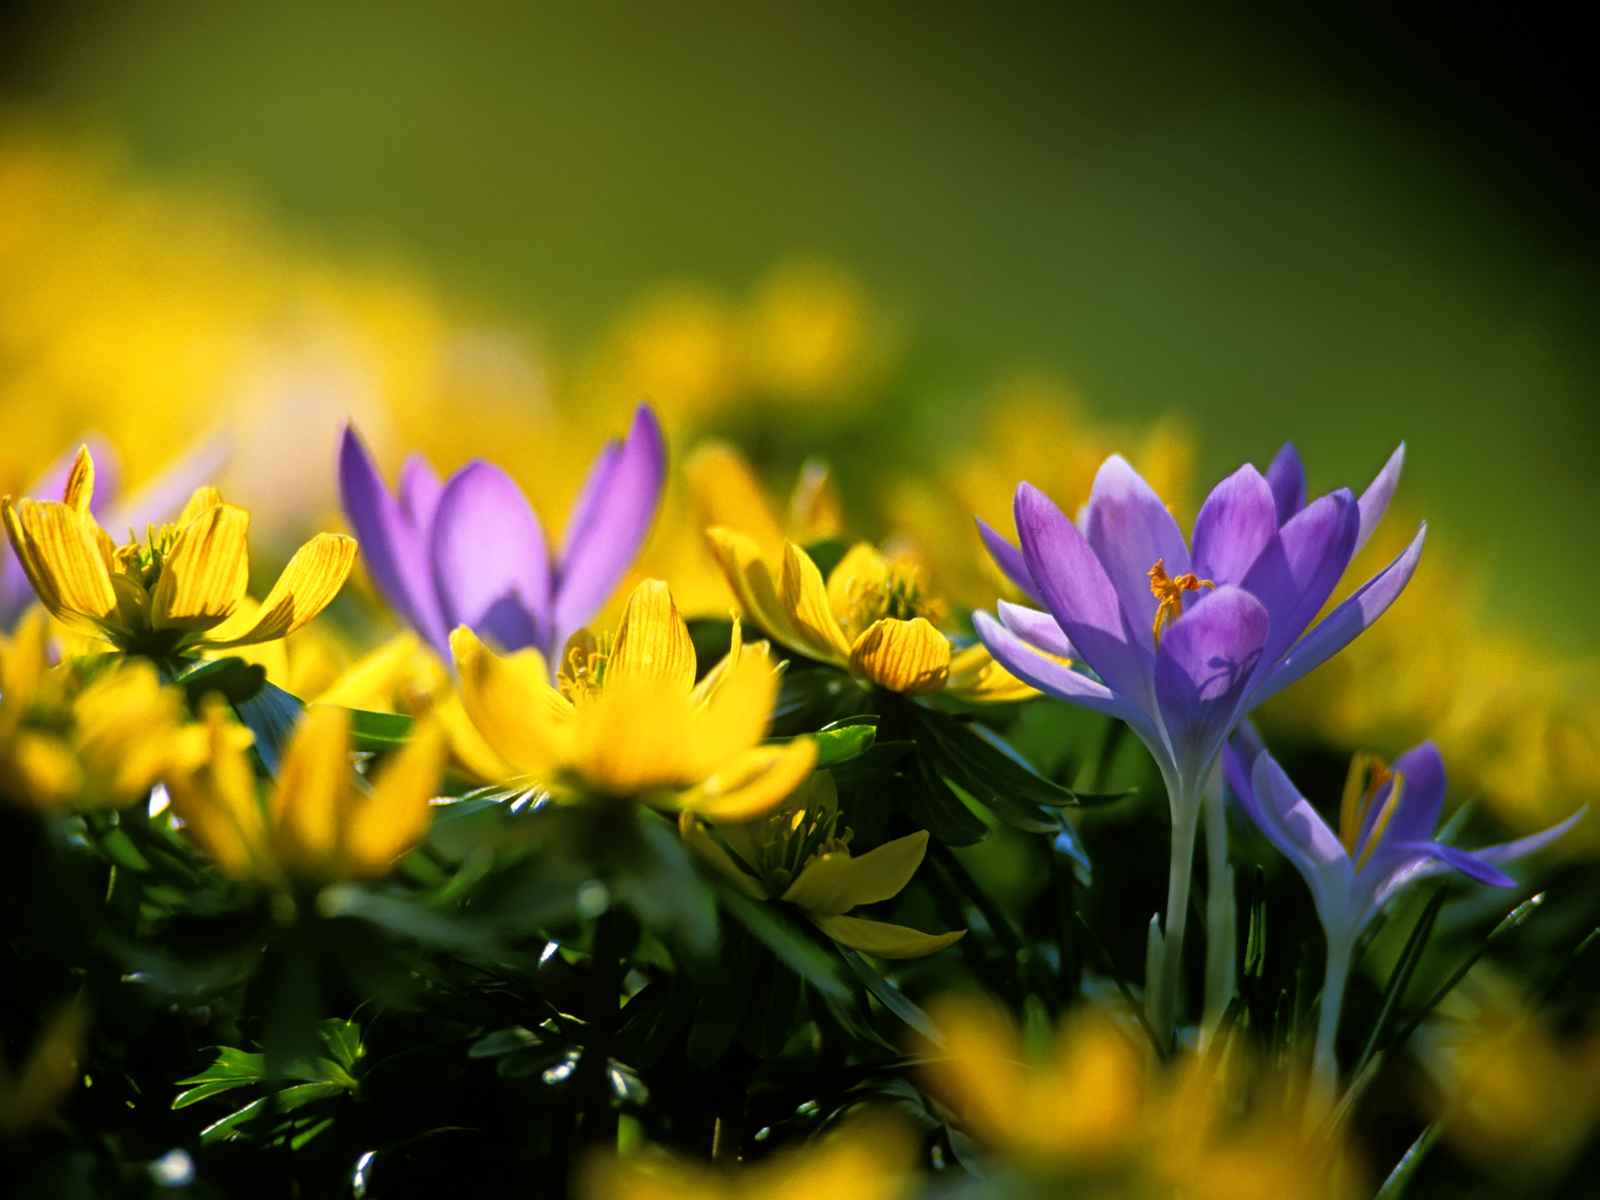 crocuses wallpaper 1080p